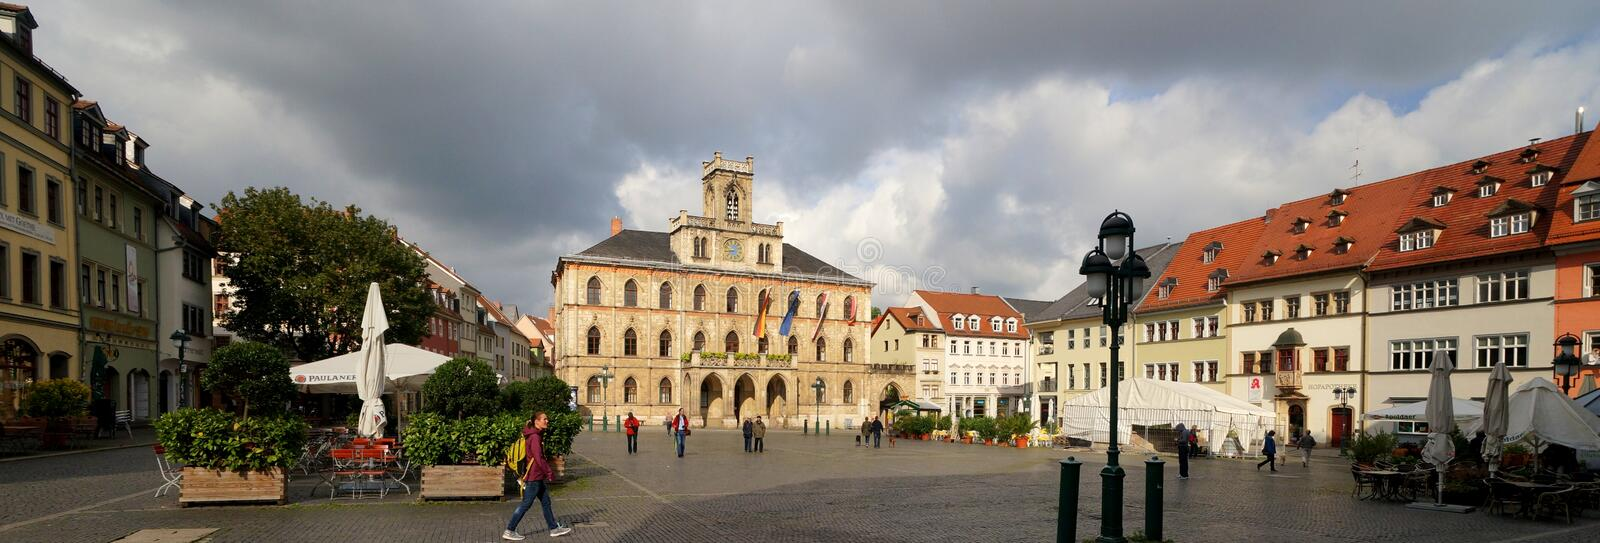 Weimar, City Hall and Market Square. The city hall and market square of Weimar. The city of Weimar in the federal state of Thuringia, Germany, is well known for stock image